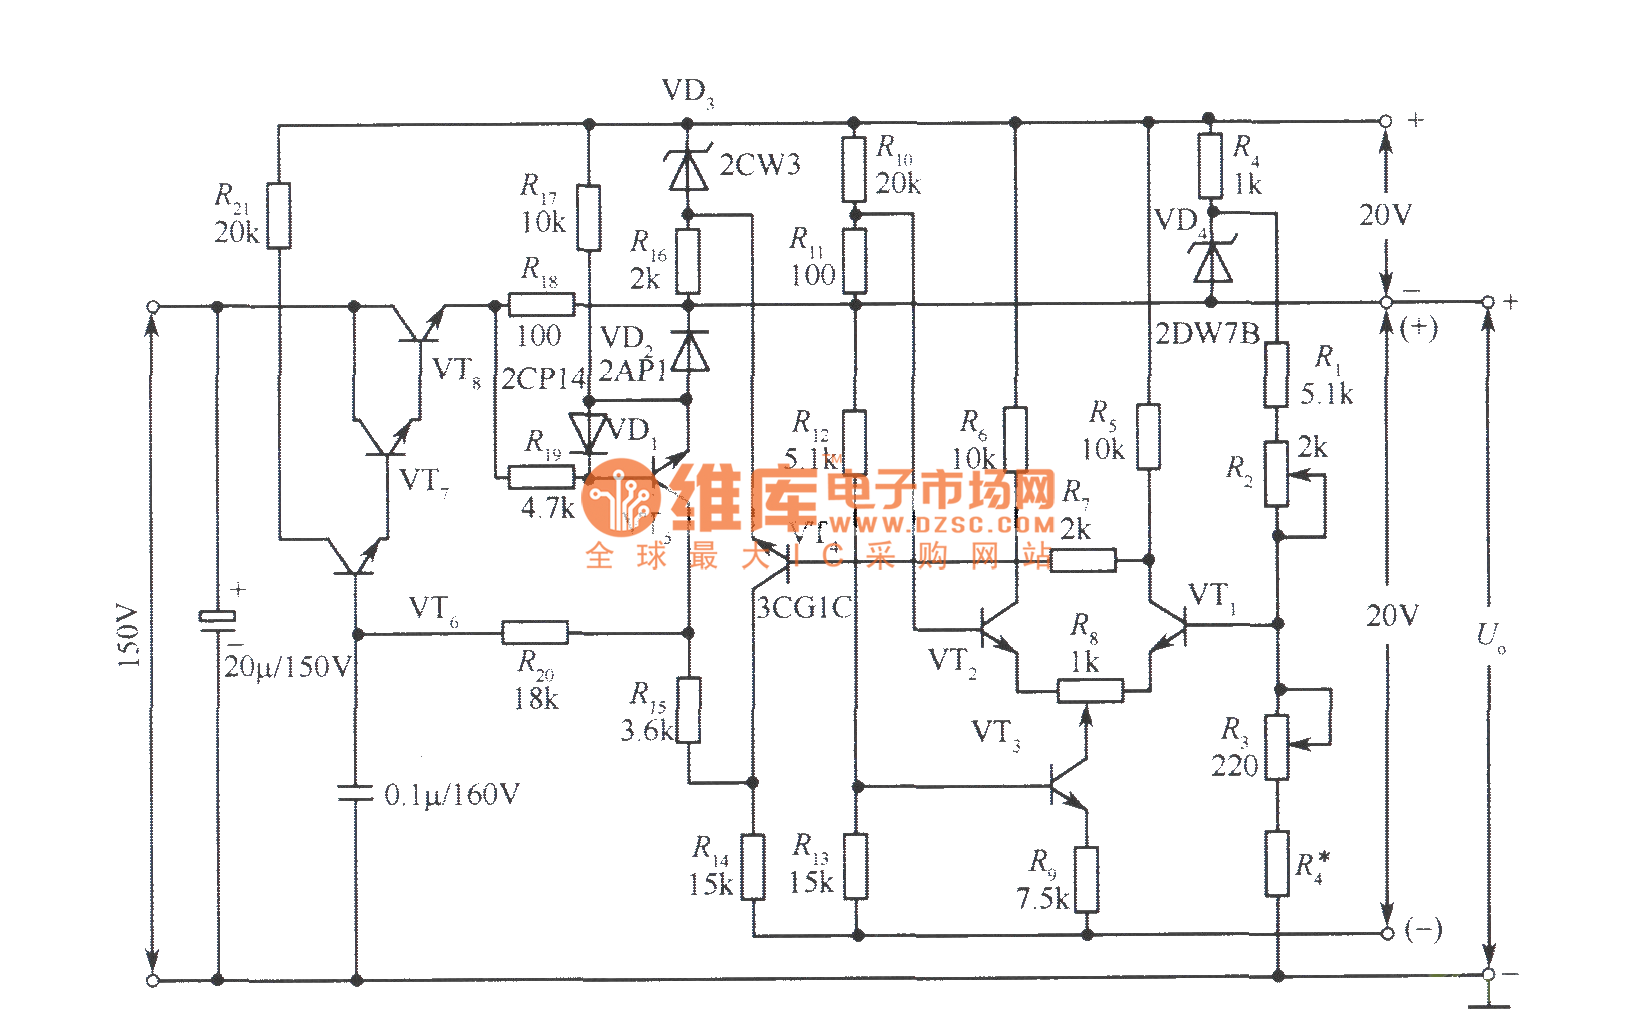 led light wiring diagram with 3 120v Stabilized Voltage Supply Circuit on Motorcycle Full Wave Shunt Regulator likewise 3 120V stabilized voltage supply circuit likewise Pint Size Project Lucas Wiring further Honeywell Motorised Valve Wiring Diagram further New outdoor lighting 30m automatic lifting high mast pole light in China.